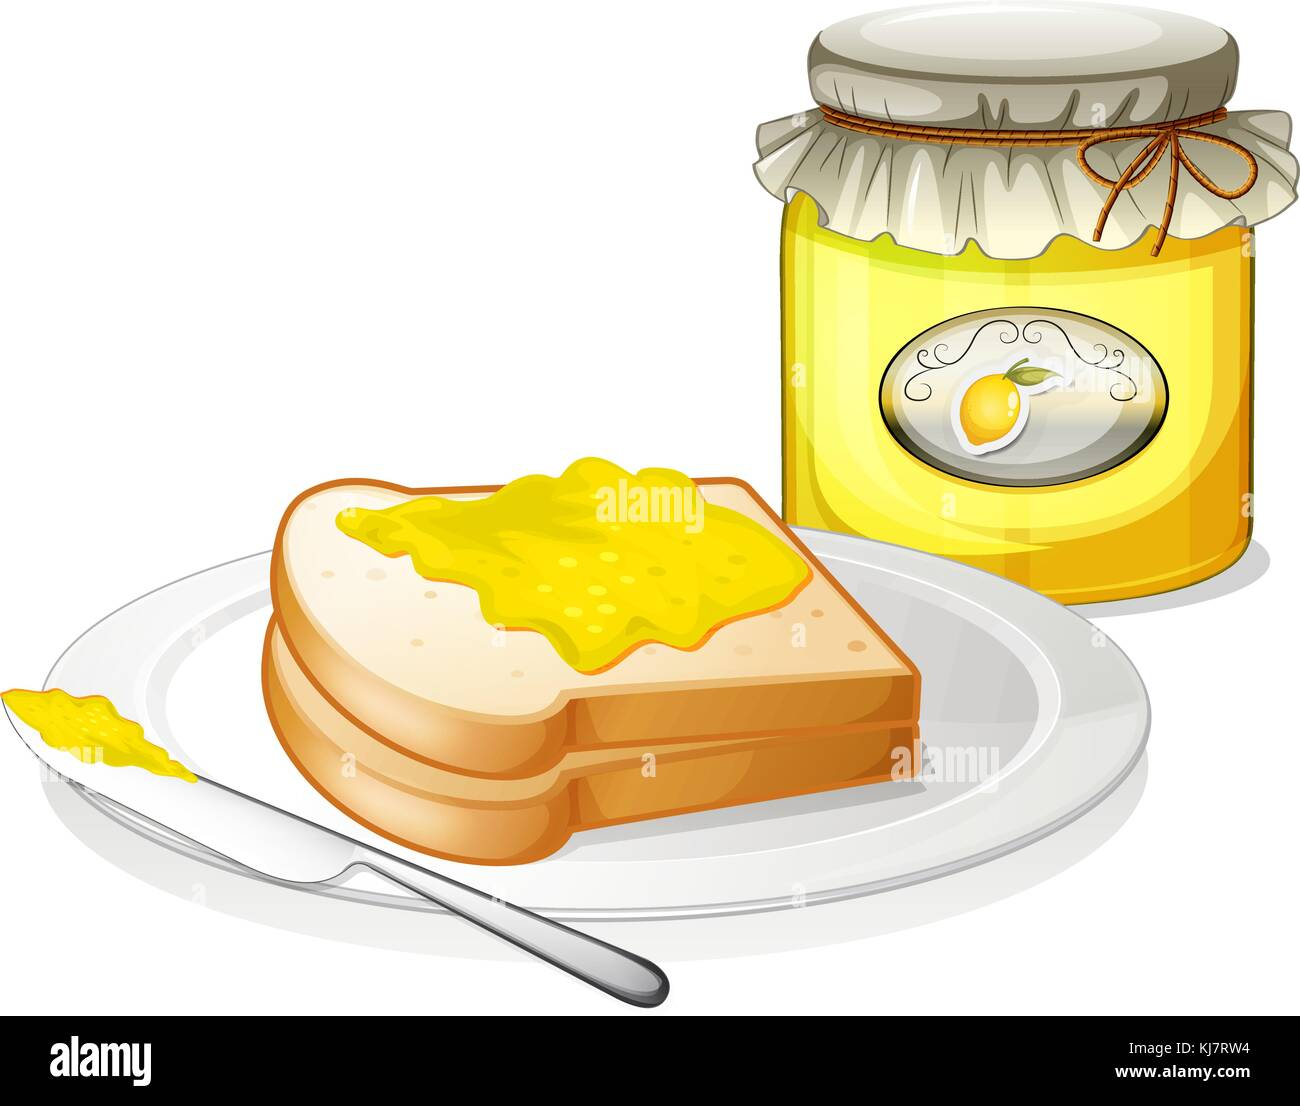 Illustration of a bottle of jam and a sandwich on a white background - Stock Vector